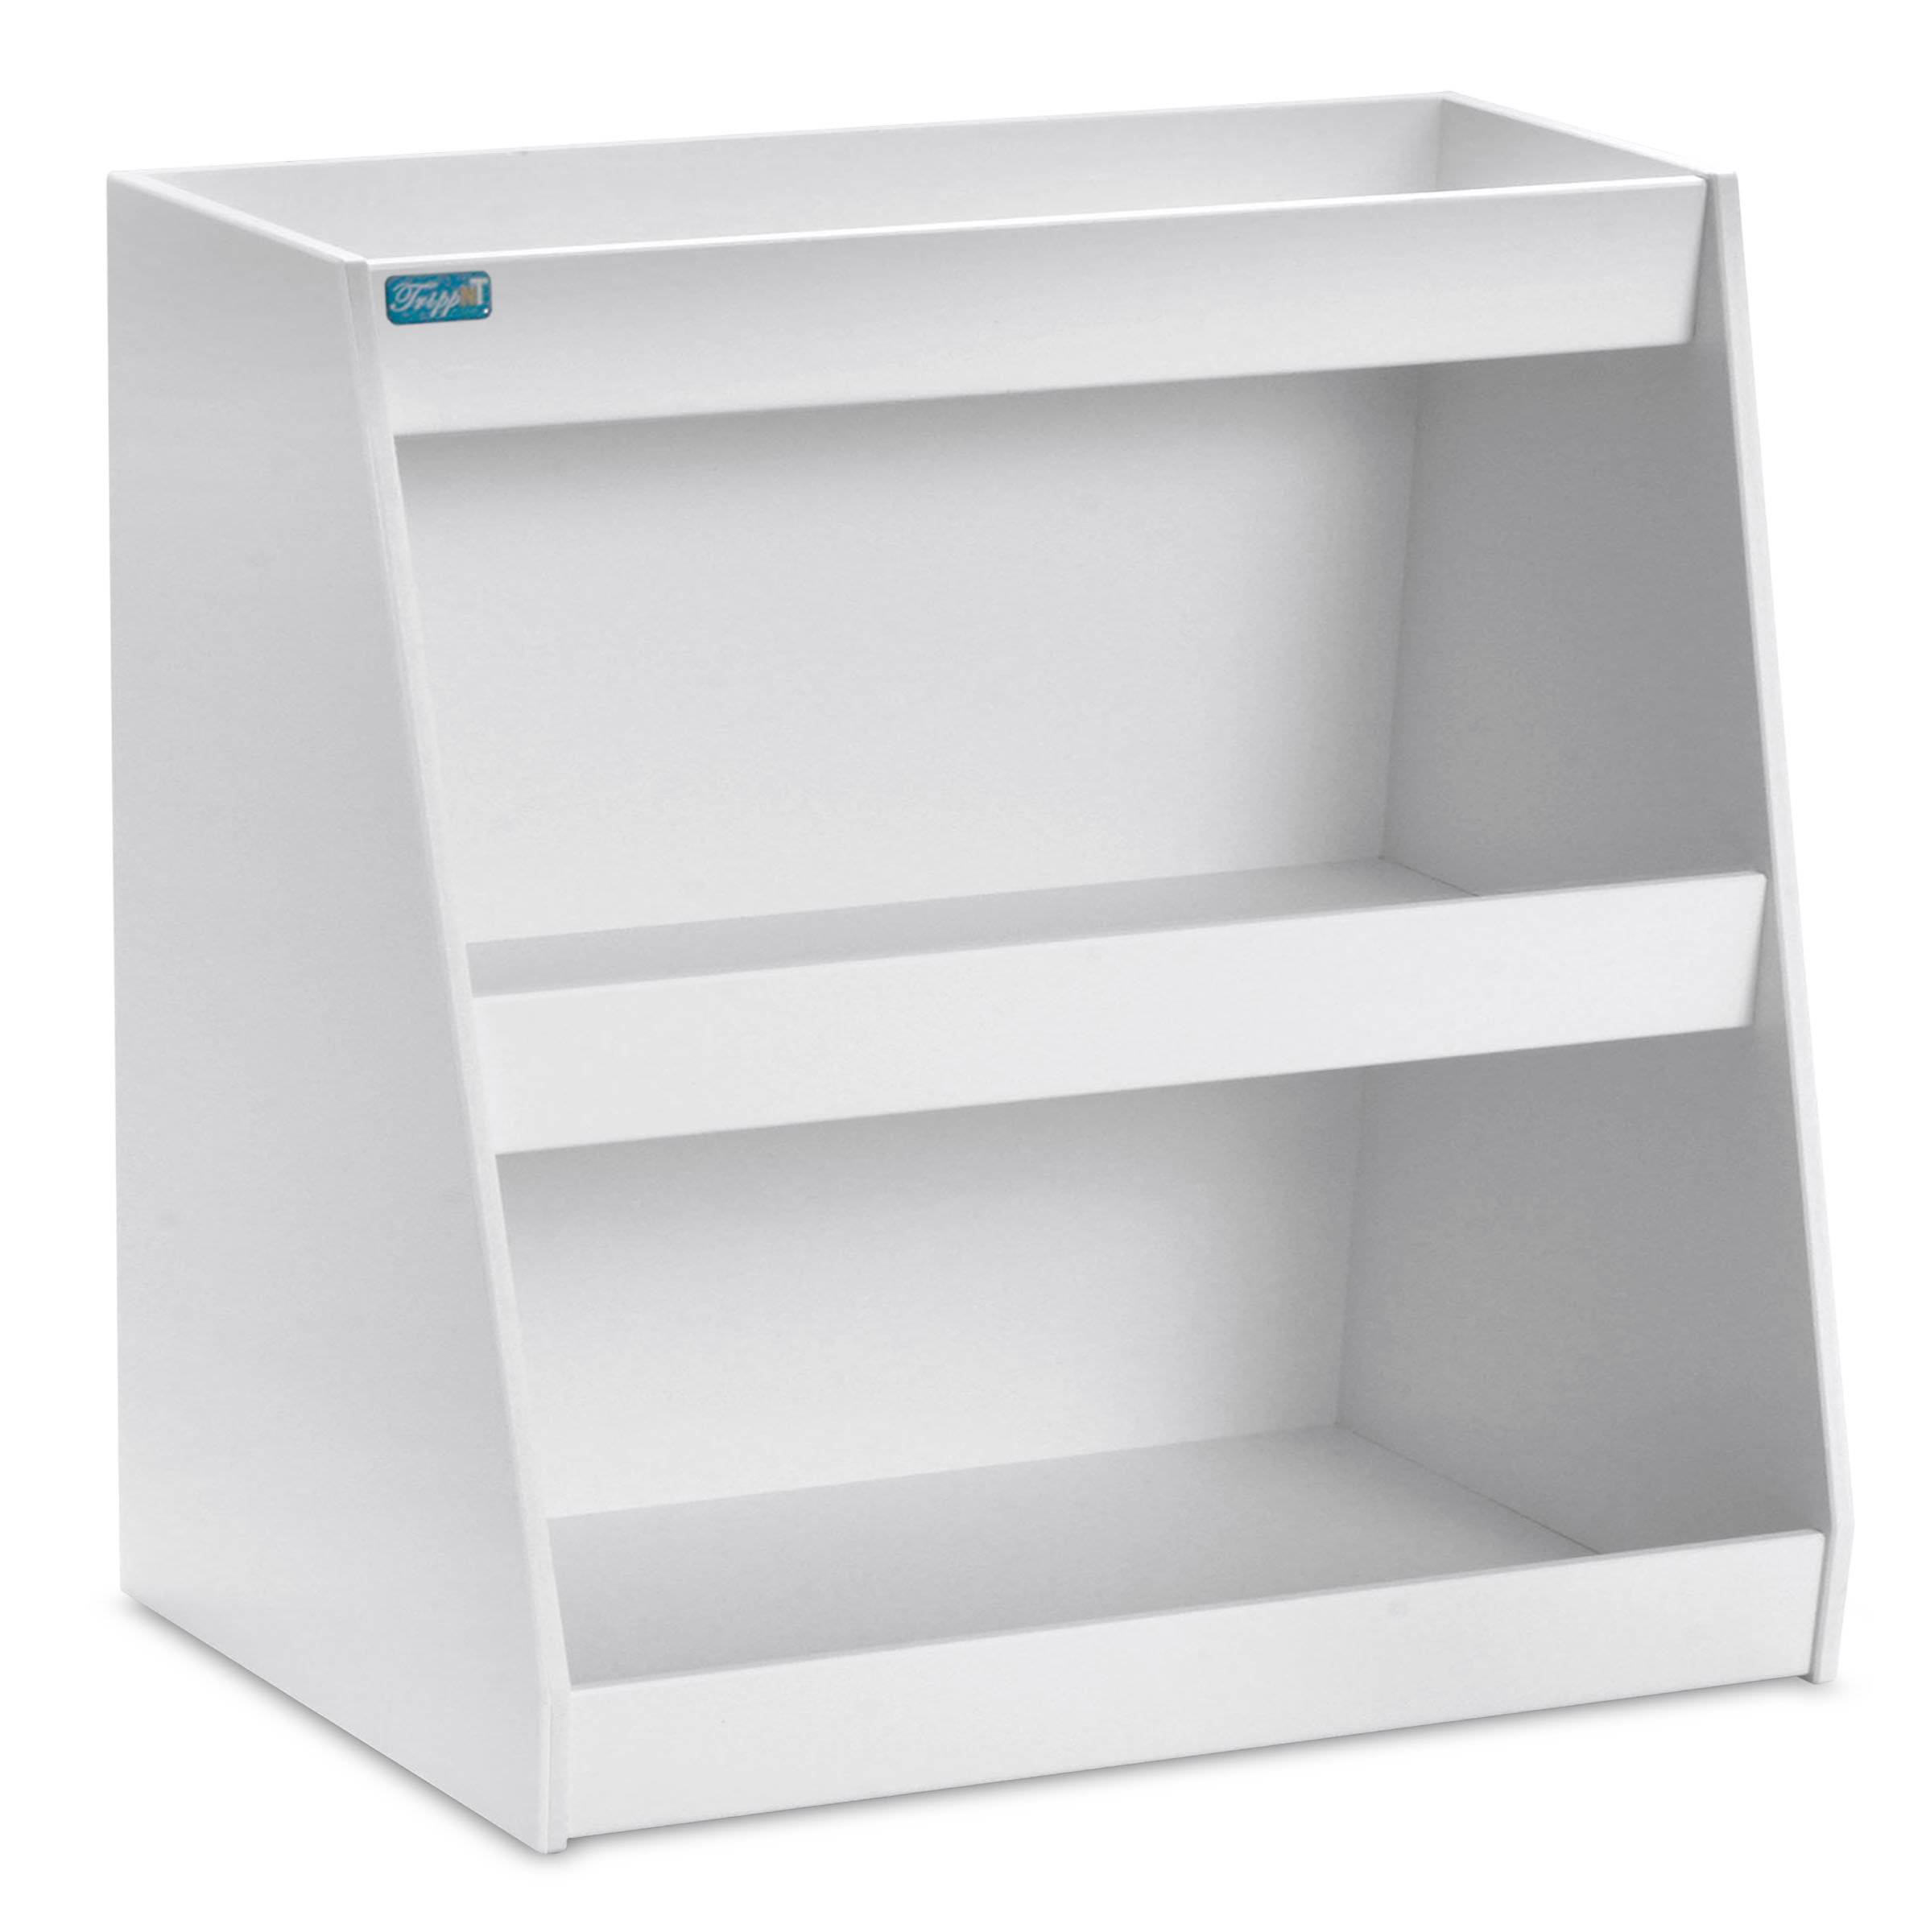 TrippNT 50106 PVC Angled Triple Safety Shelves with No Door, 12'' Width x 12'' Height x 9'' Depth, White